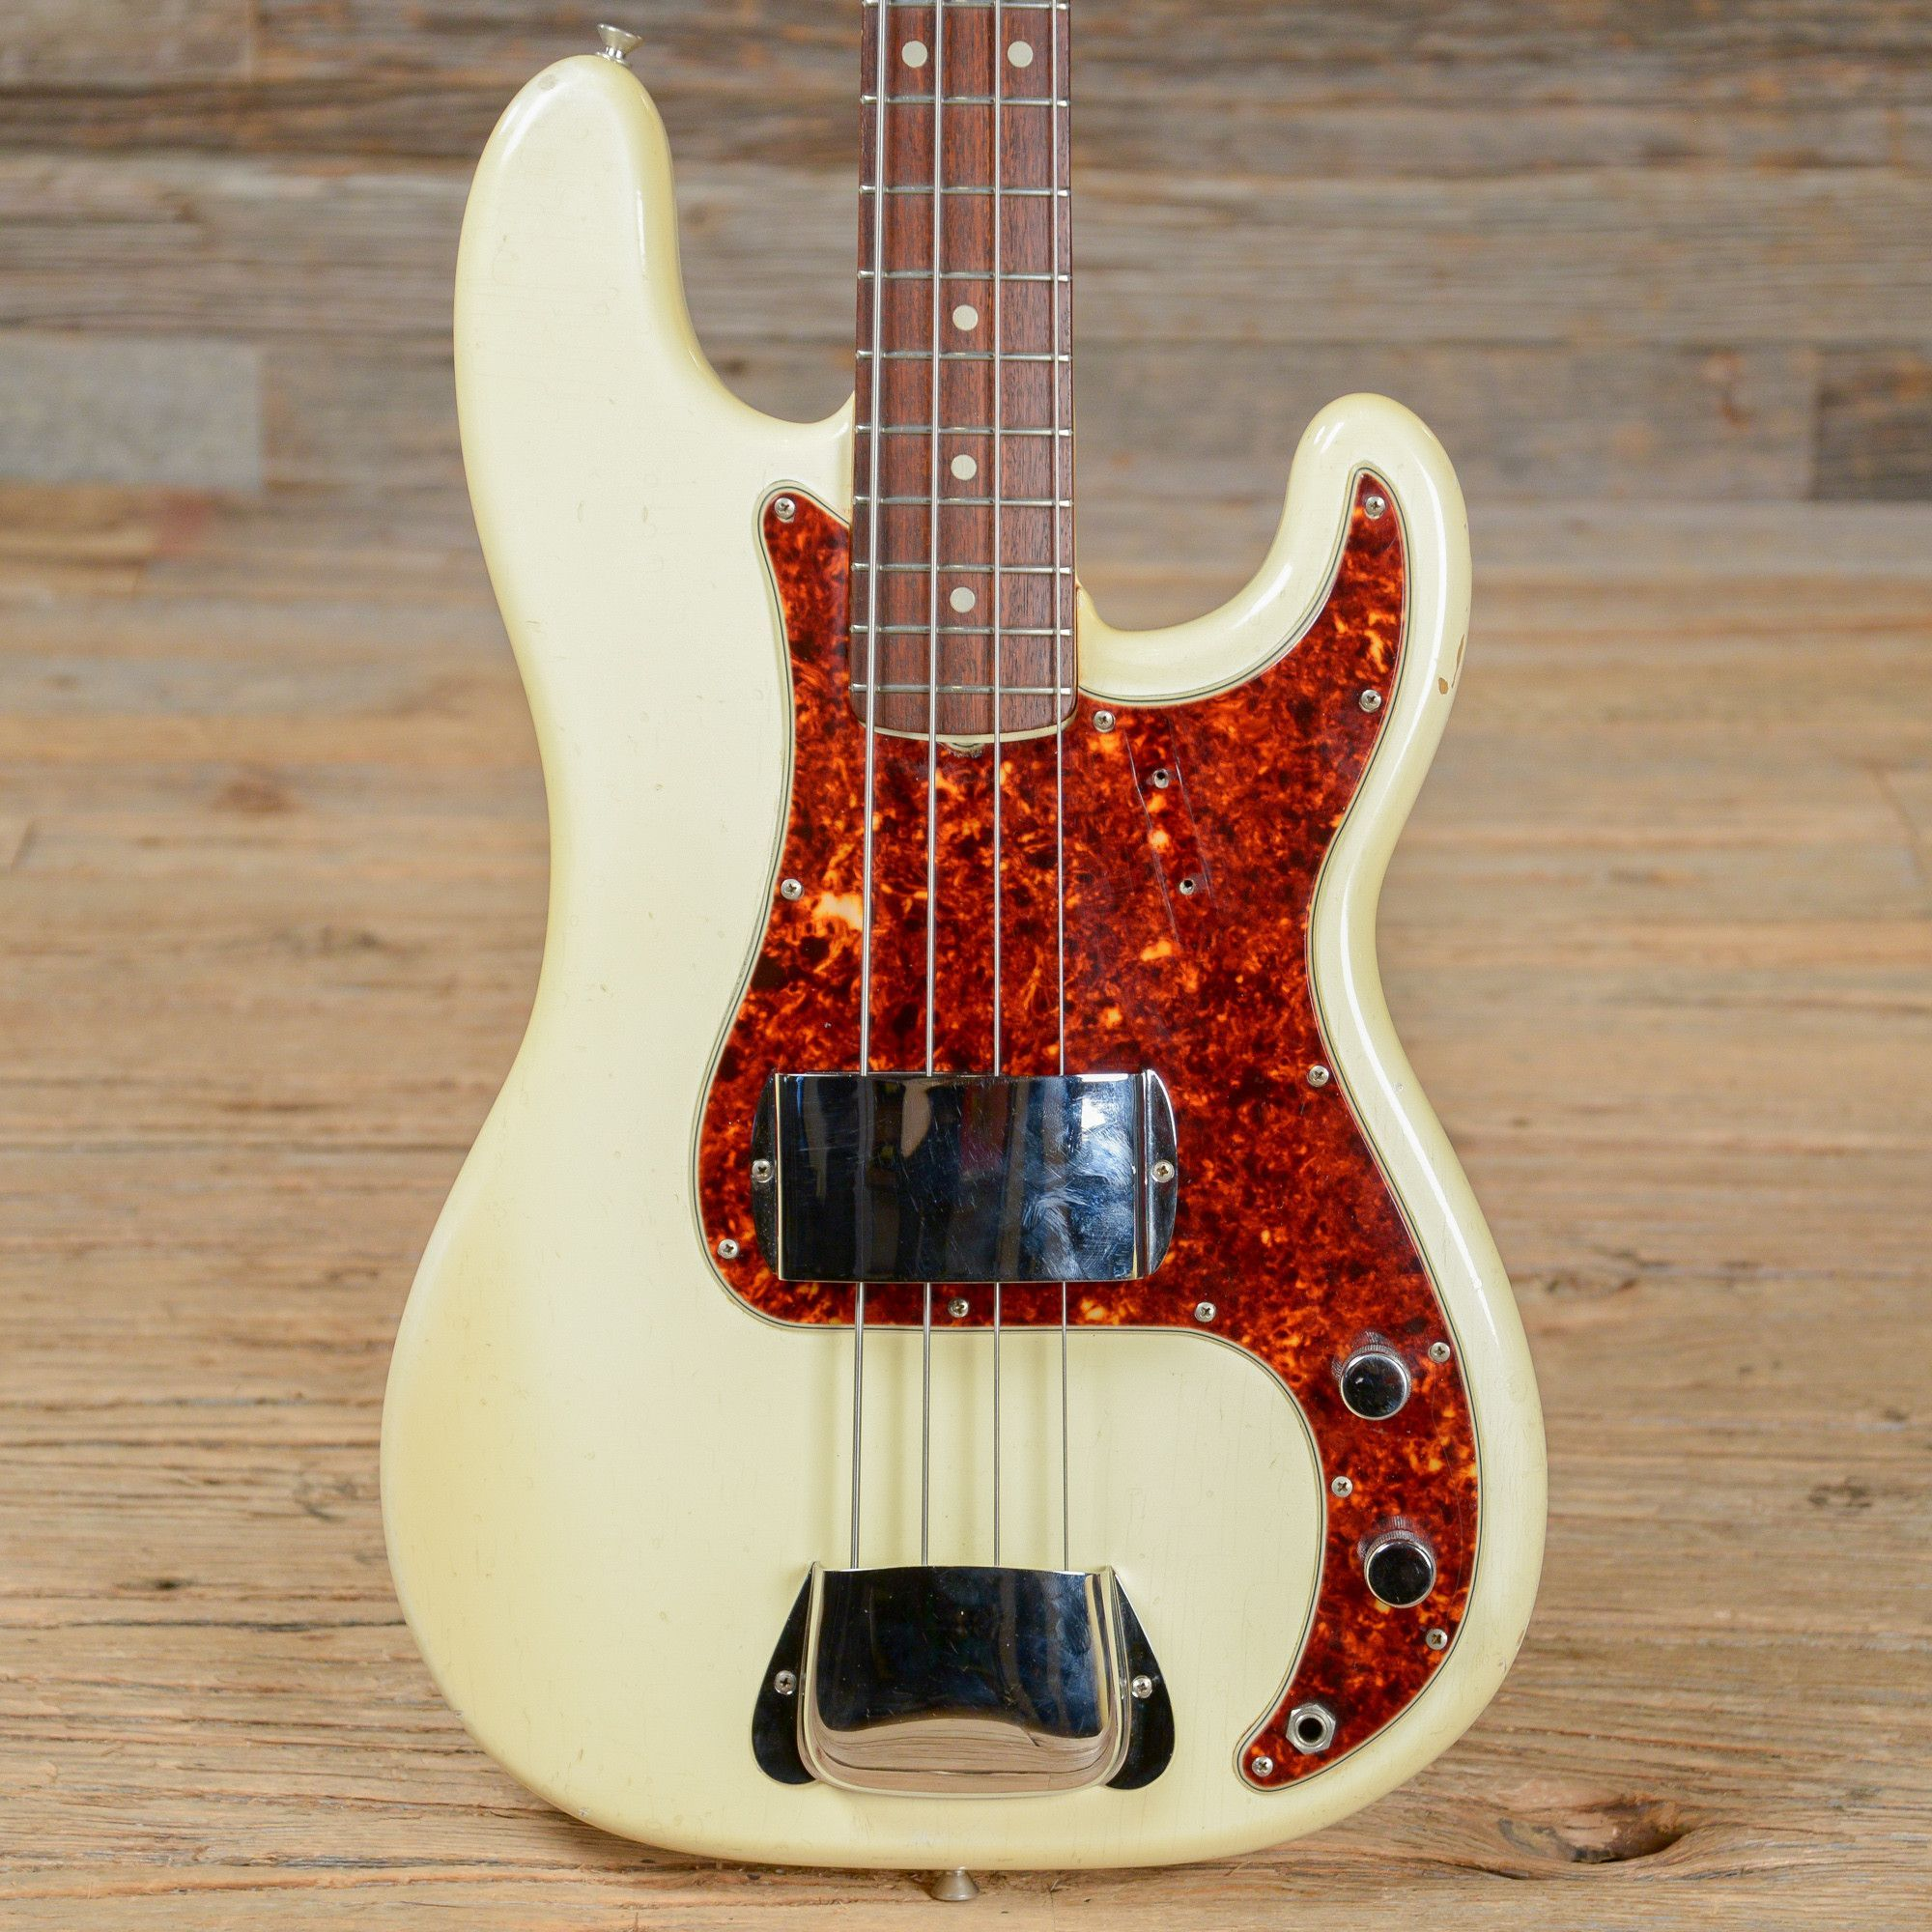 Fender Precision Bass Olympic White 1965 S703 Guitars Gibson Les Paul Wiring Diagram Besides Epiphone Jr